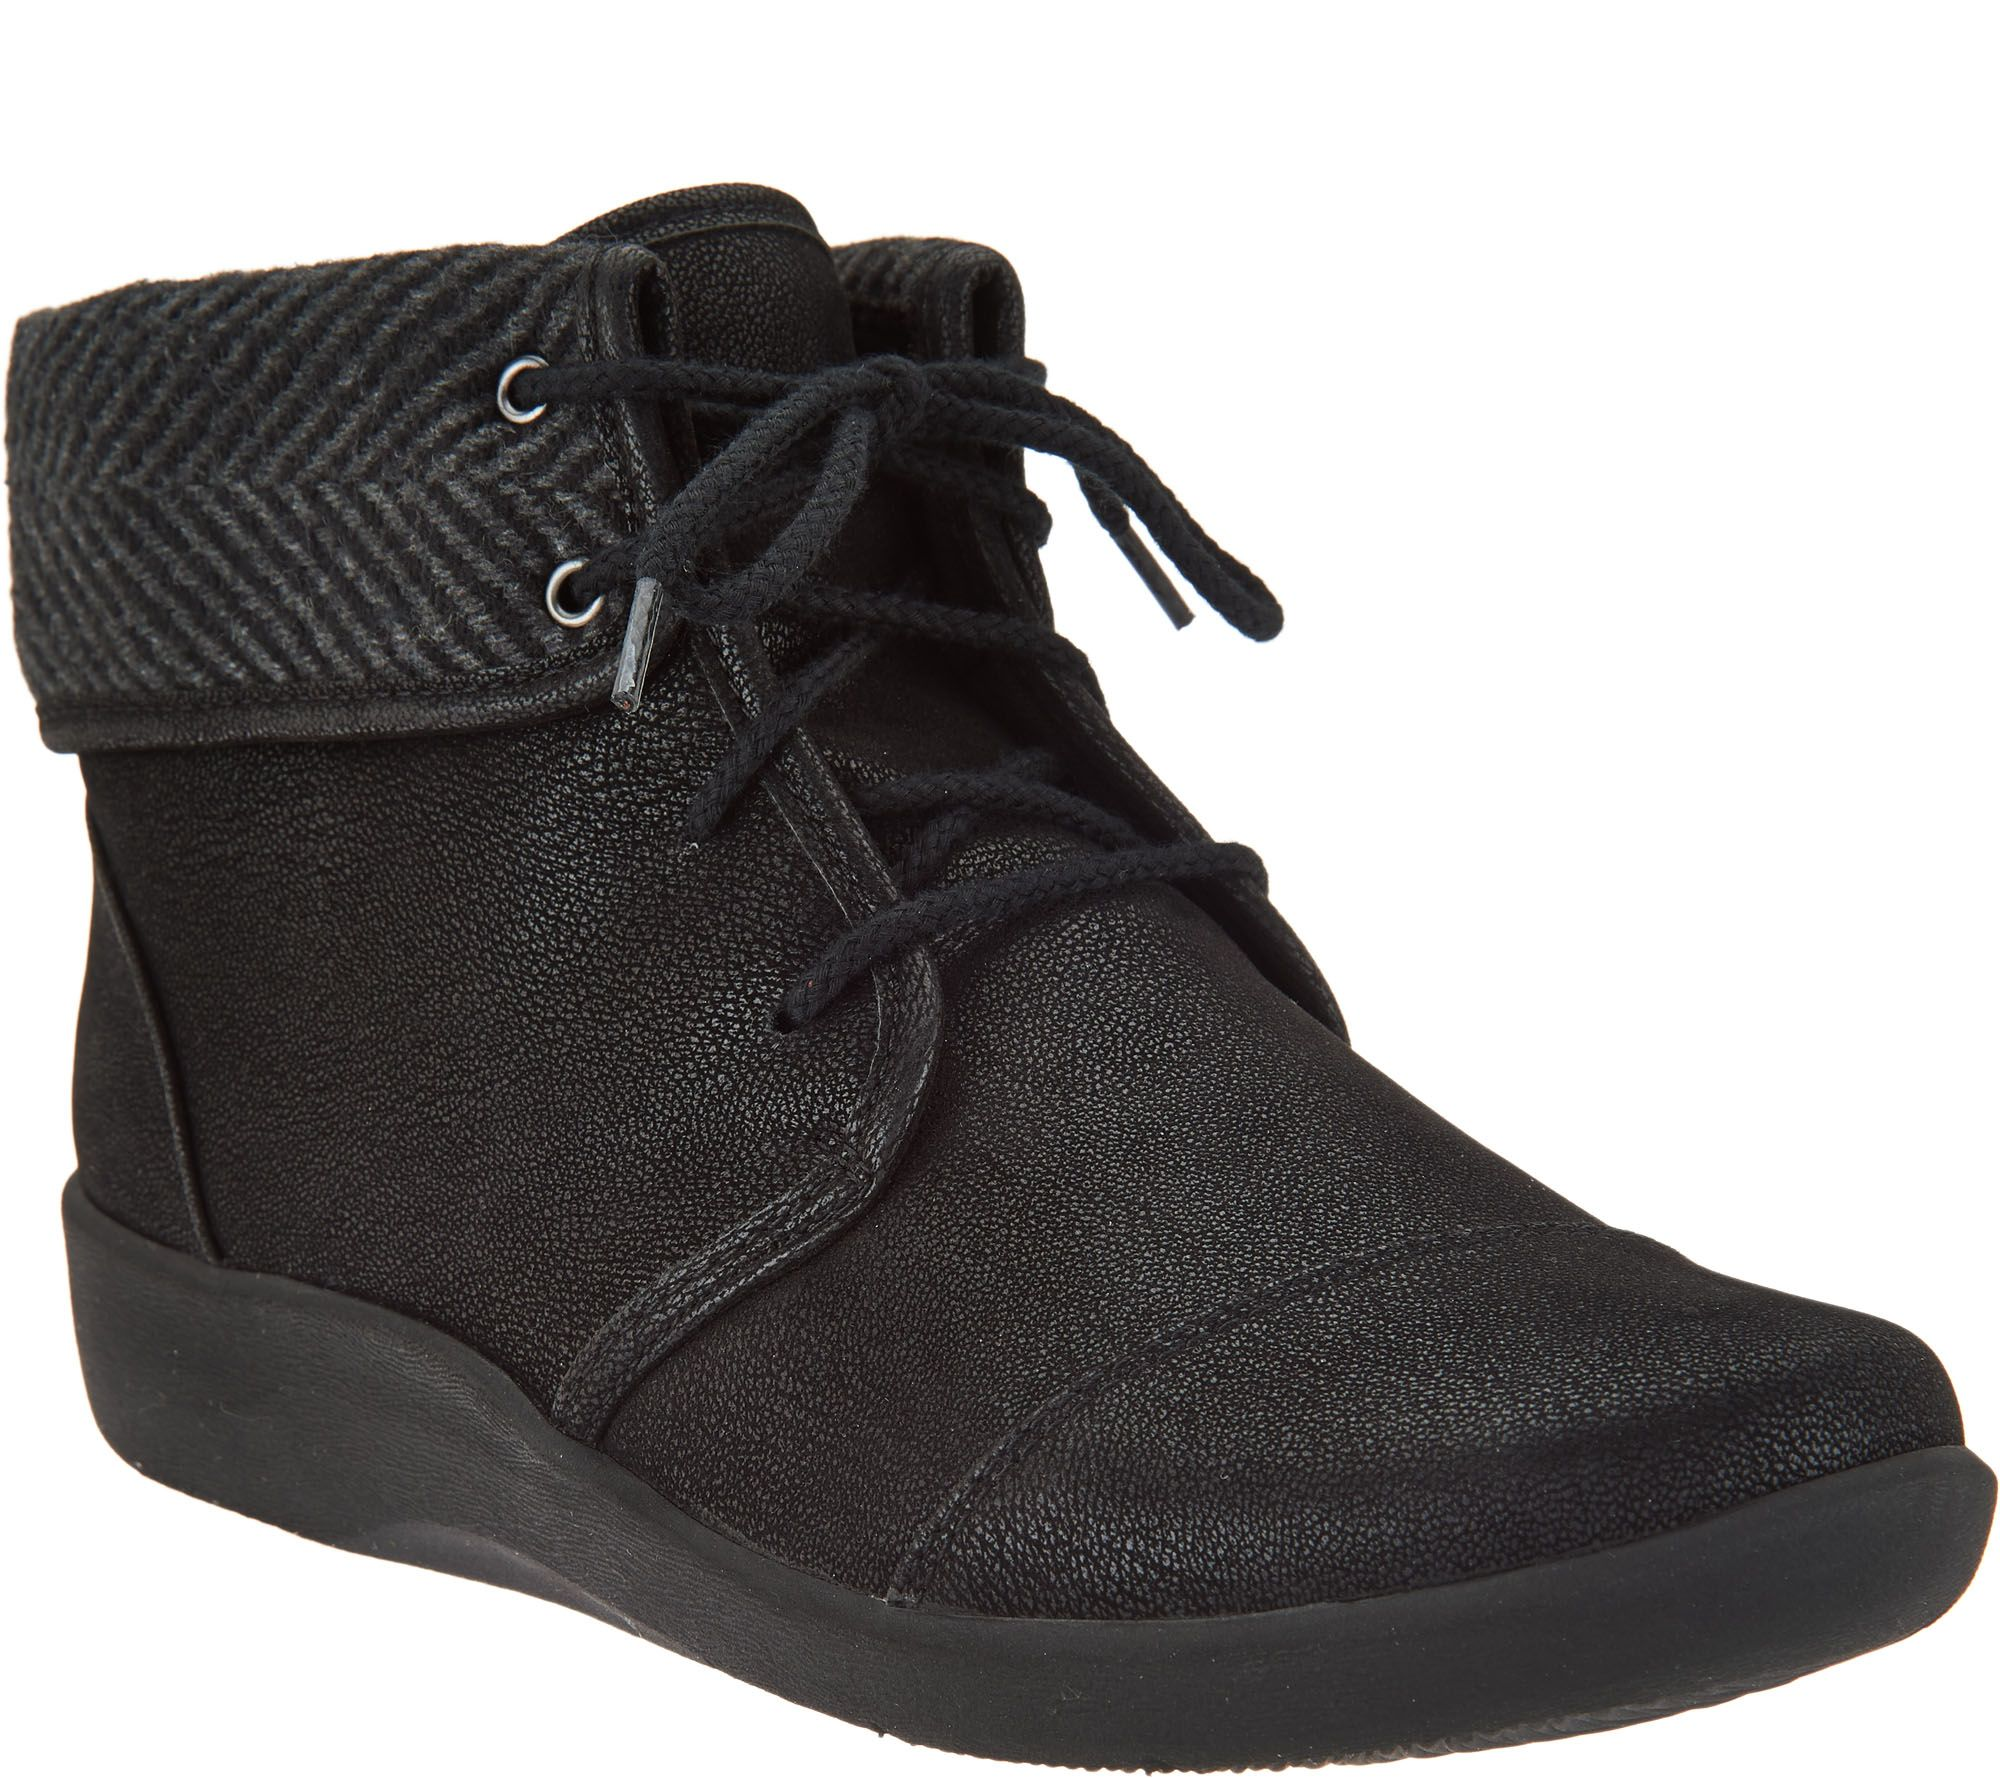 93a3999e770 CLOUDSTEPPERS by Clarks Lace-up Ankle Boots - Sillian Frey - Page 1 —  QVC.com